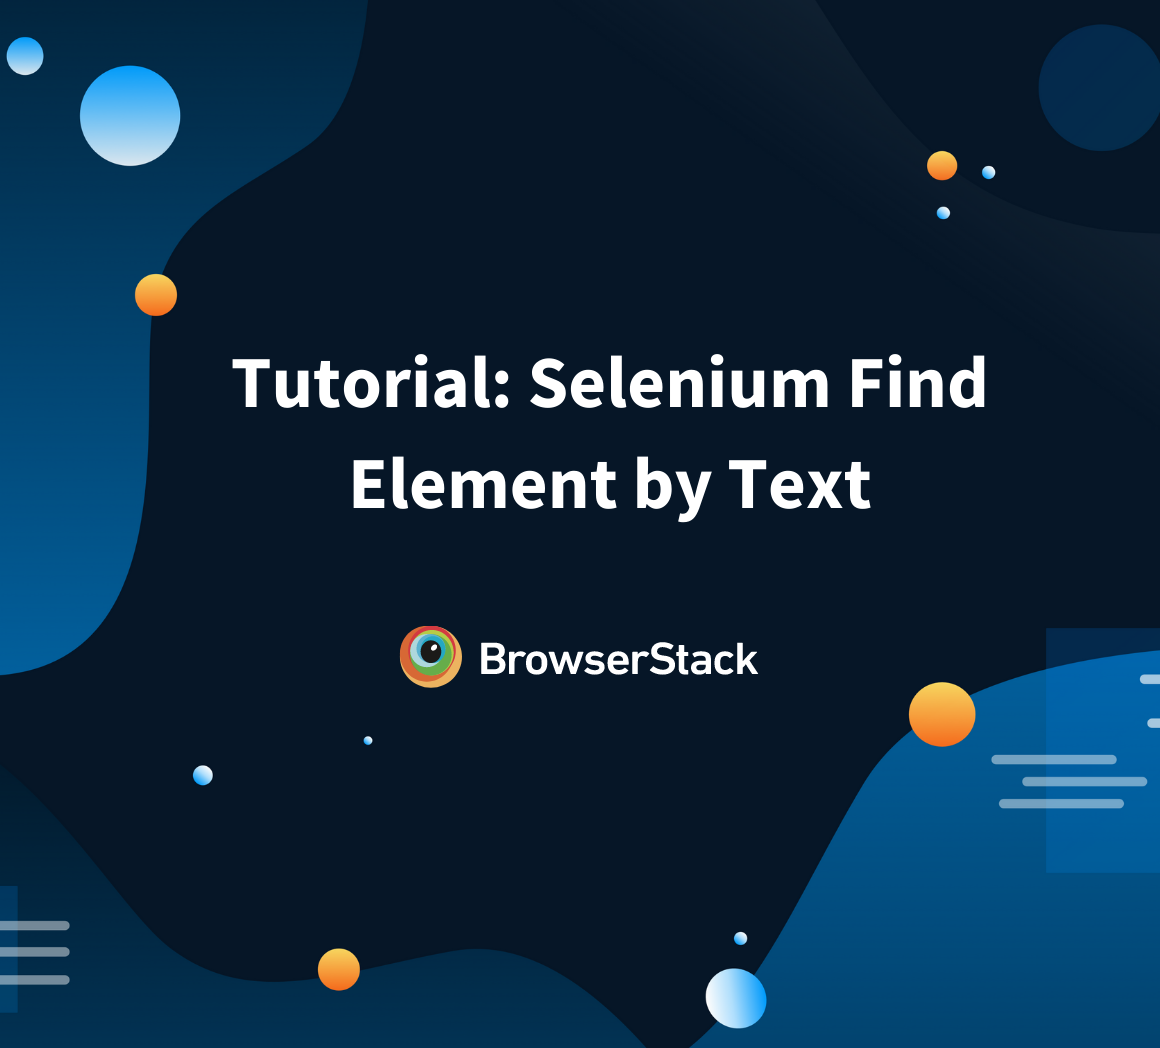 Tutorial: Selenium Find Element by Text